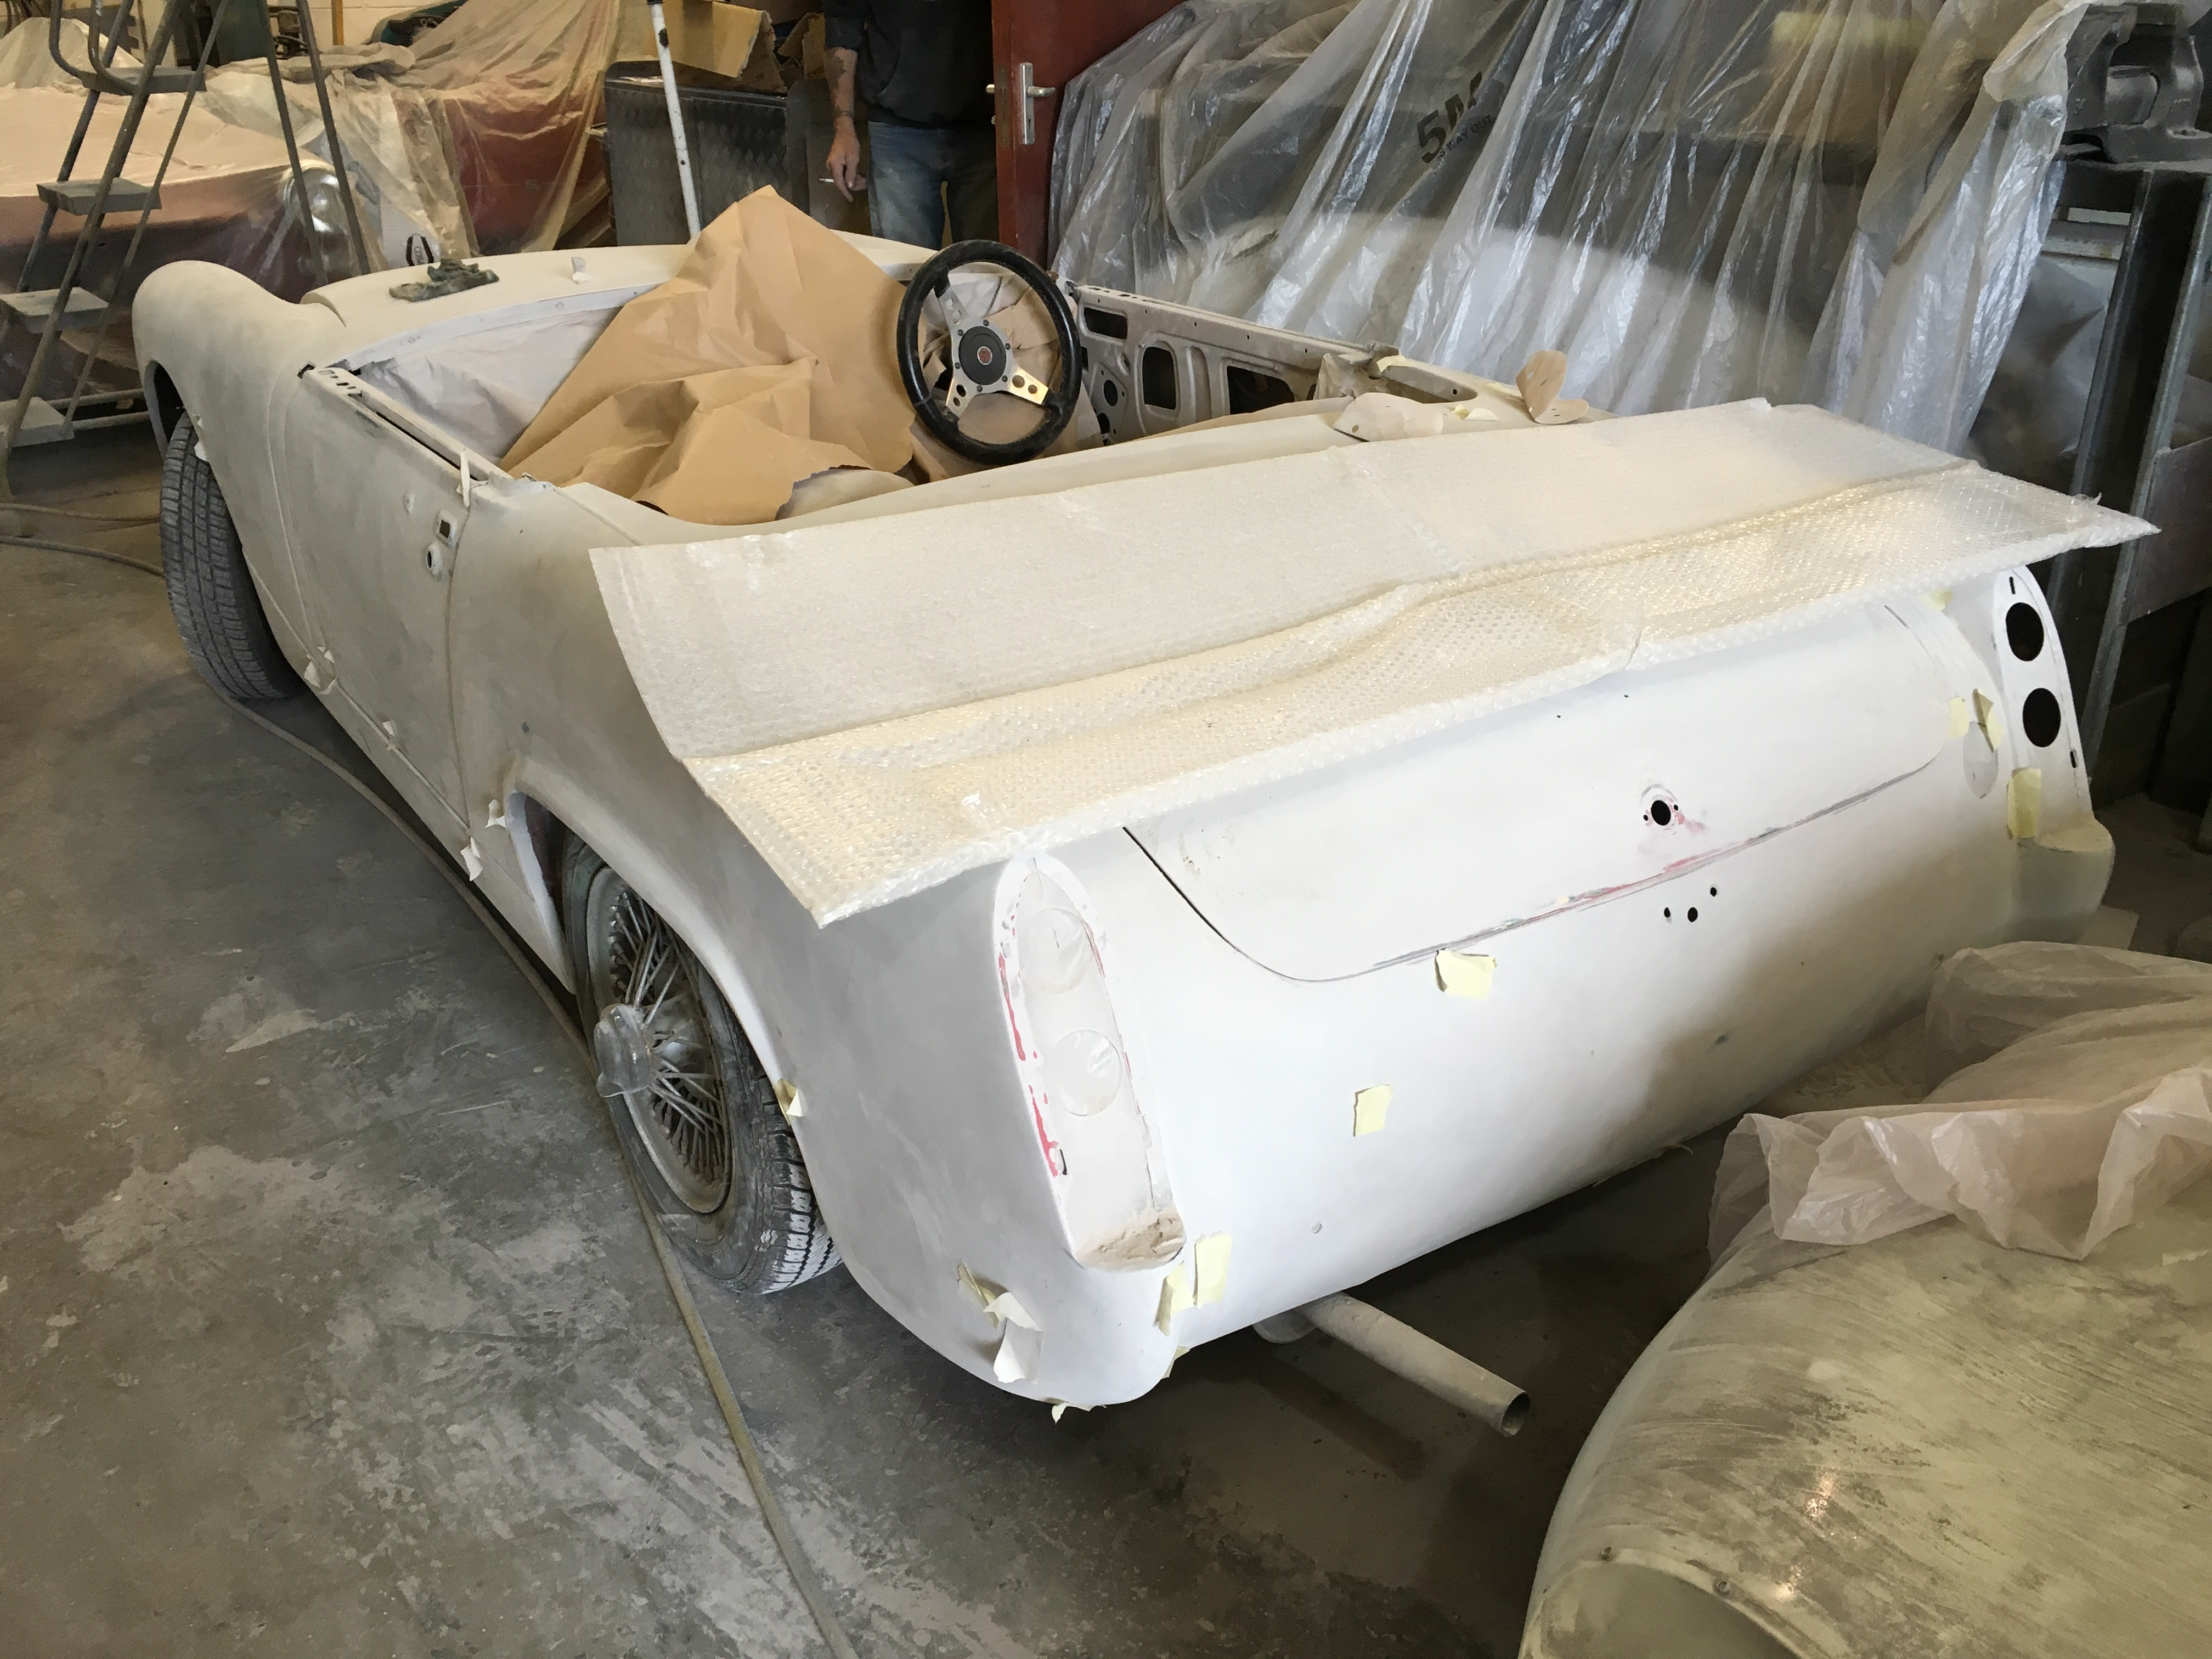 1966 MG Midget Ready For Paint